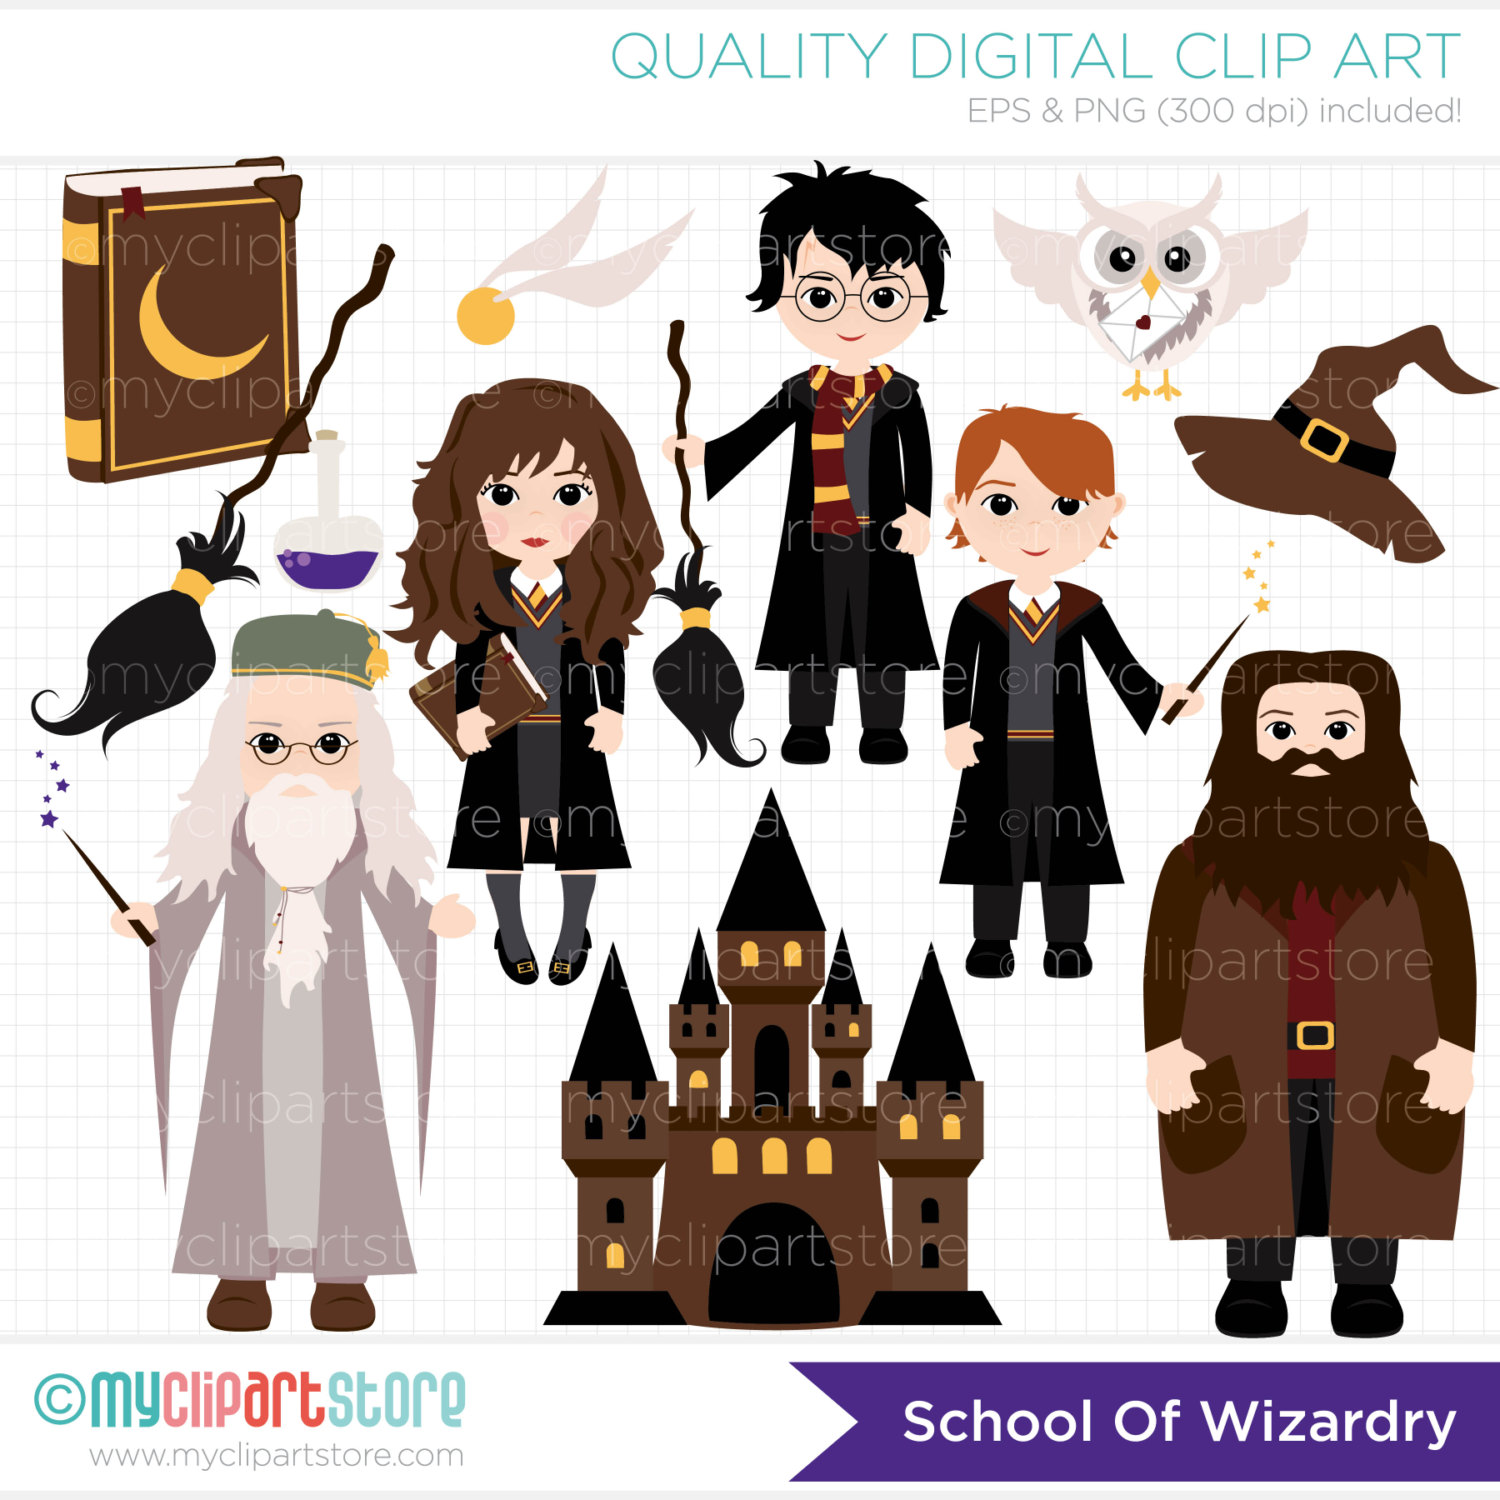 Wizard clipart castle This Wizardry Griffendor a